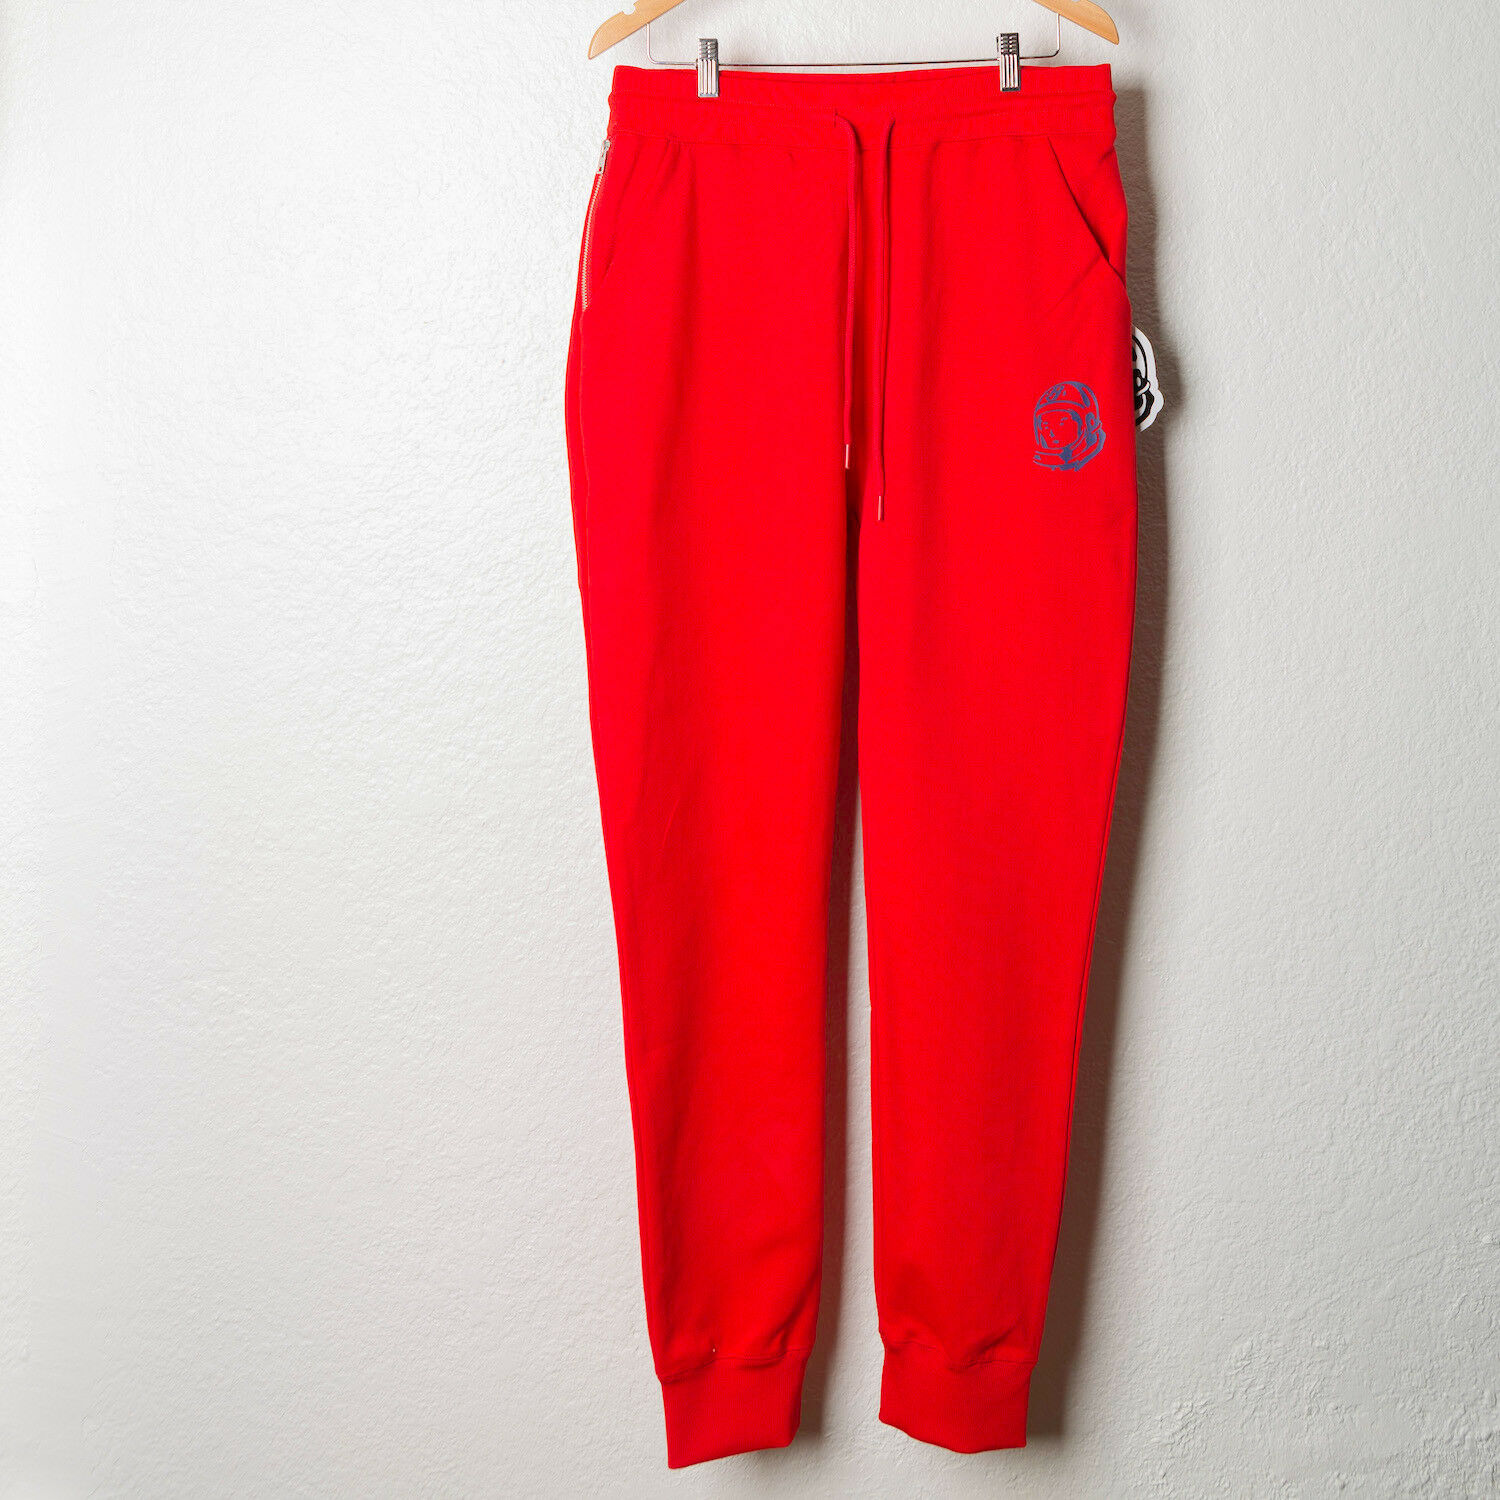 BILLIONAIRE BOYS CLUB BBC STREETWEAR SWEATPANTS DRAWSTRING BB RED SWEATS M L XL